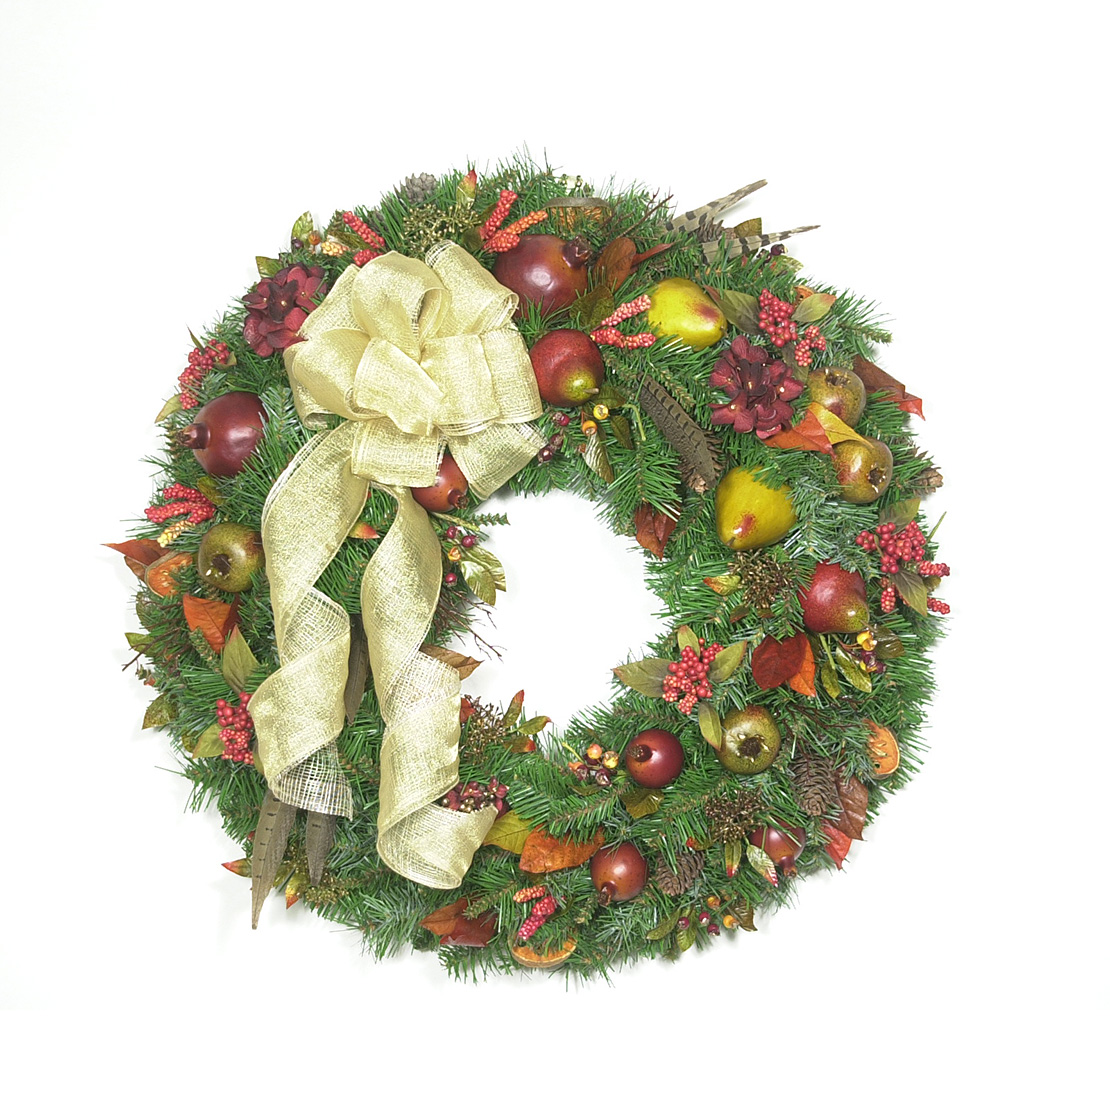 An Old-Fashioned Christmas Wreath - Wreaths Unlimited